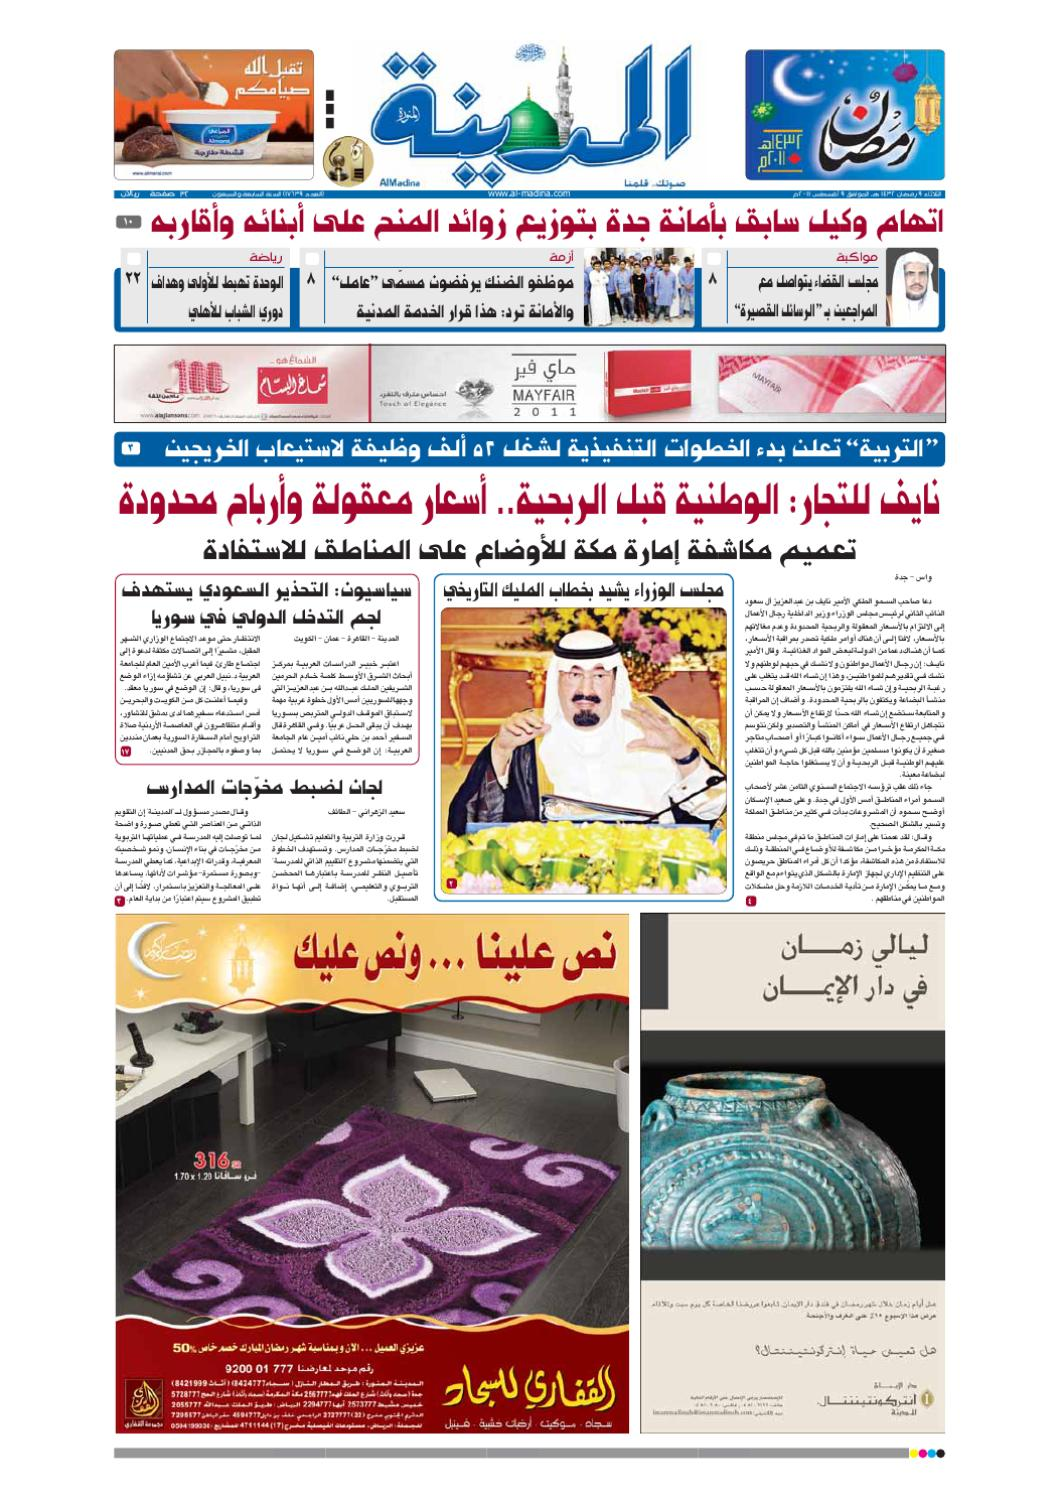 c77de8349173c Almadina20110809 by Al-Madina Newspaper - issuu